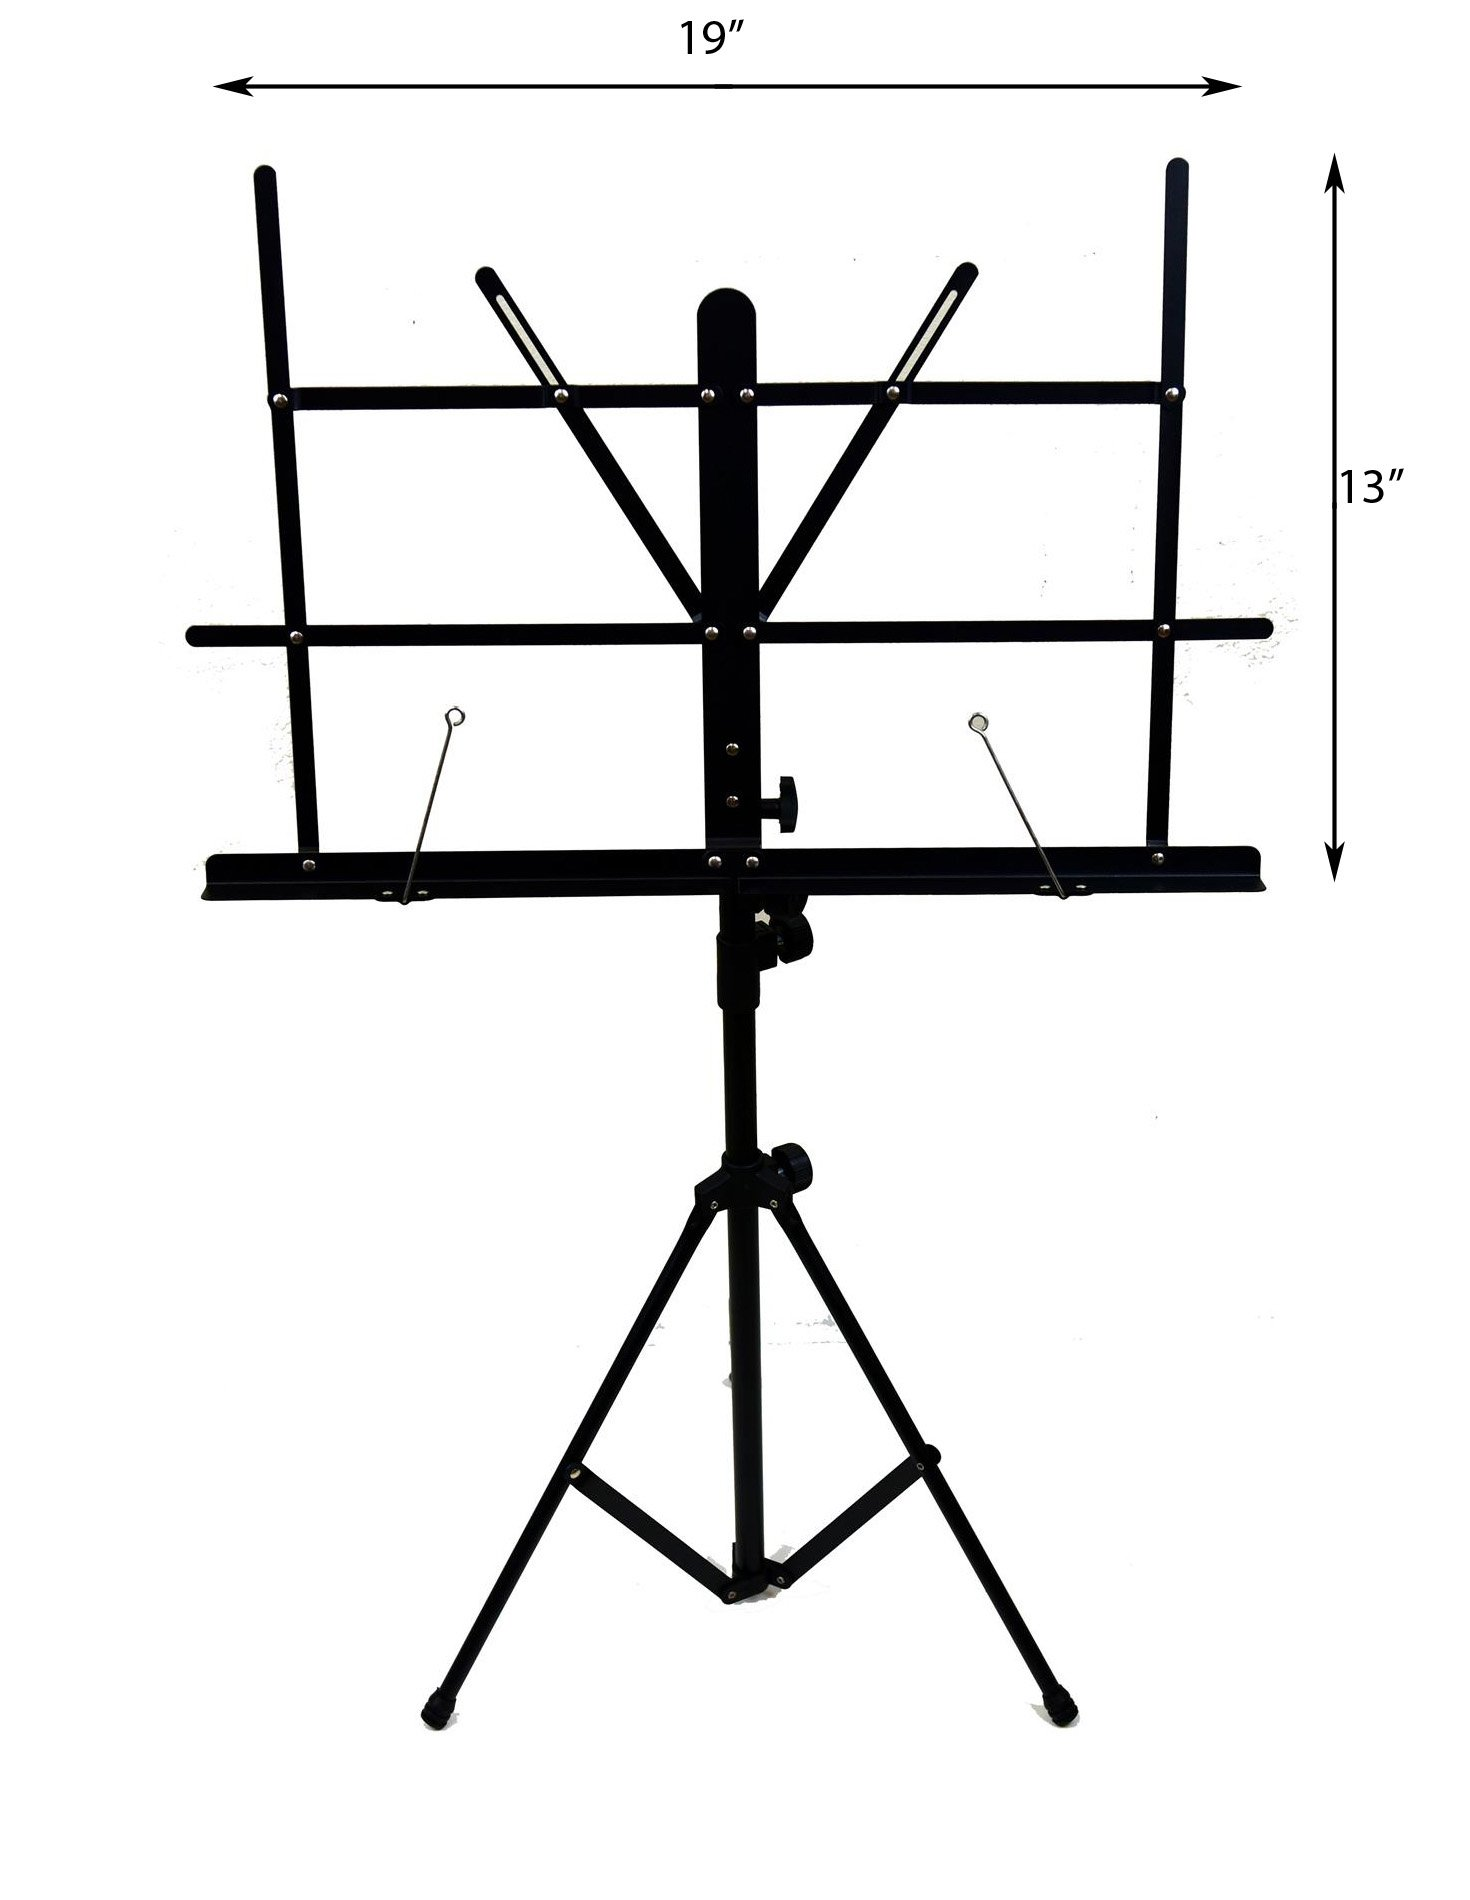 Hisonic Signature Series 7121 Two Section Folding Music Stand with Carrying Bag by Signature Music Instruments (Image #3)